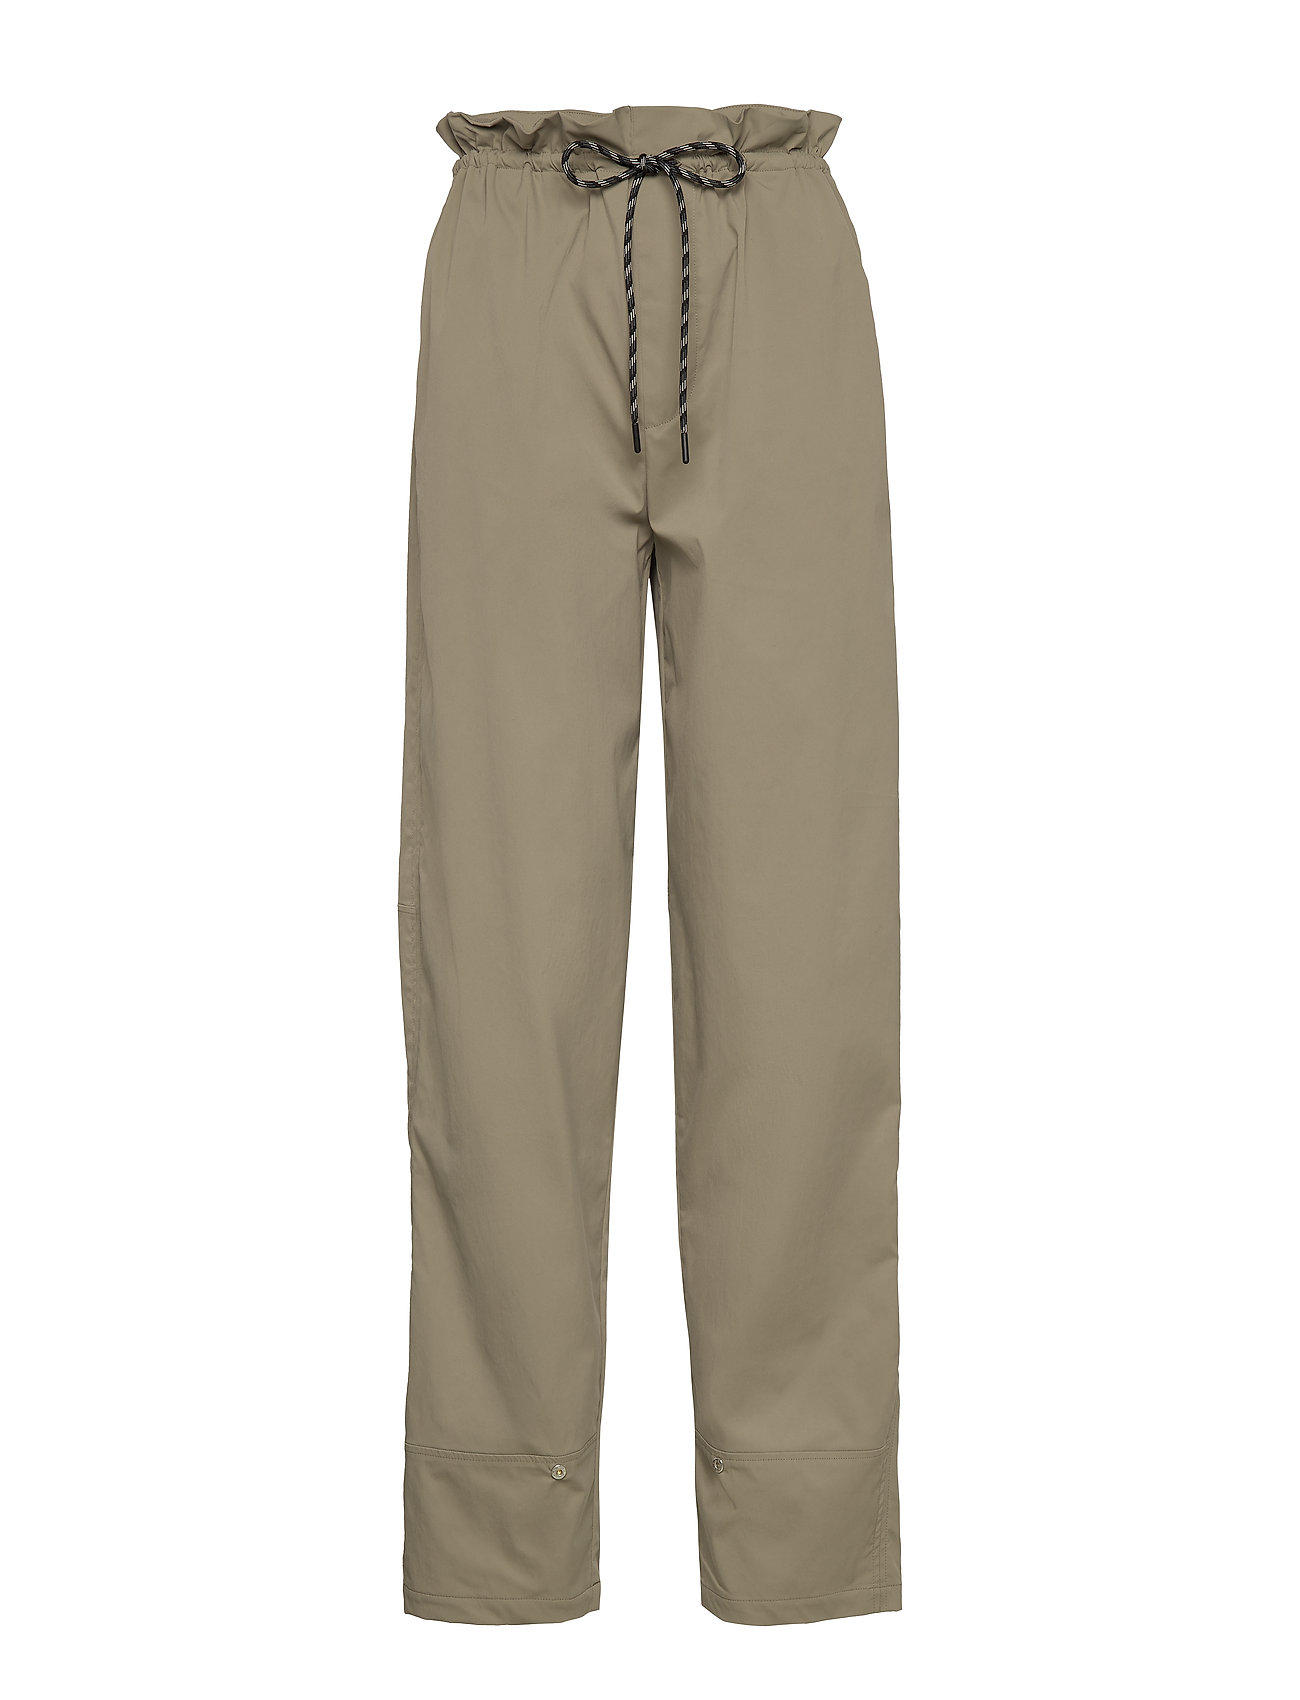 Filippa K Dance Trouser - GREY TAUPE